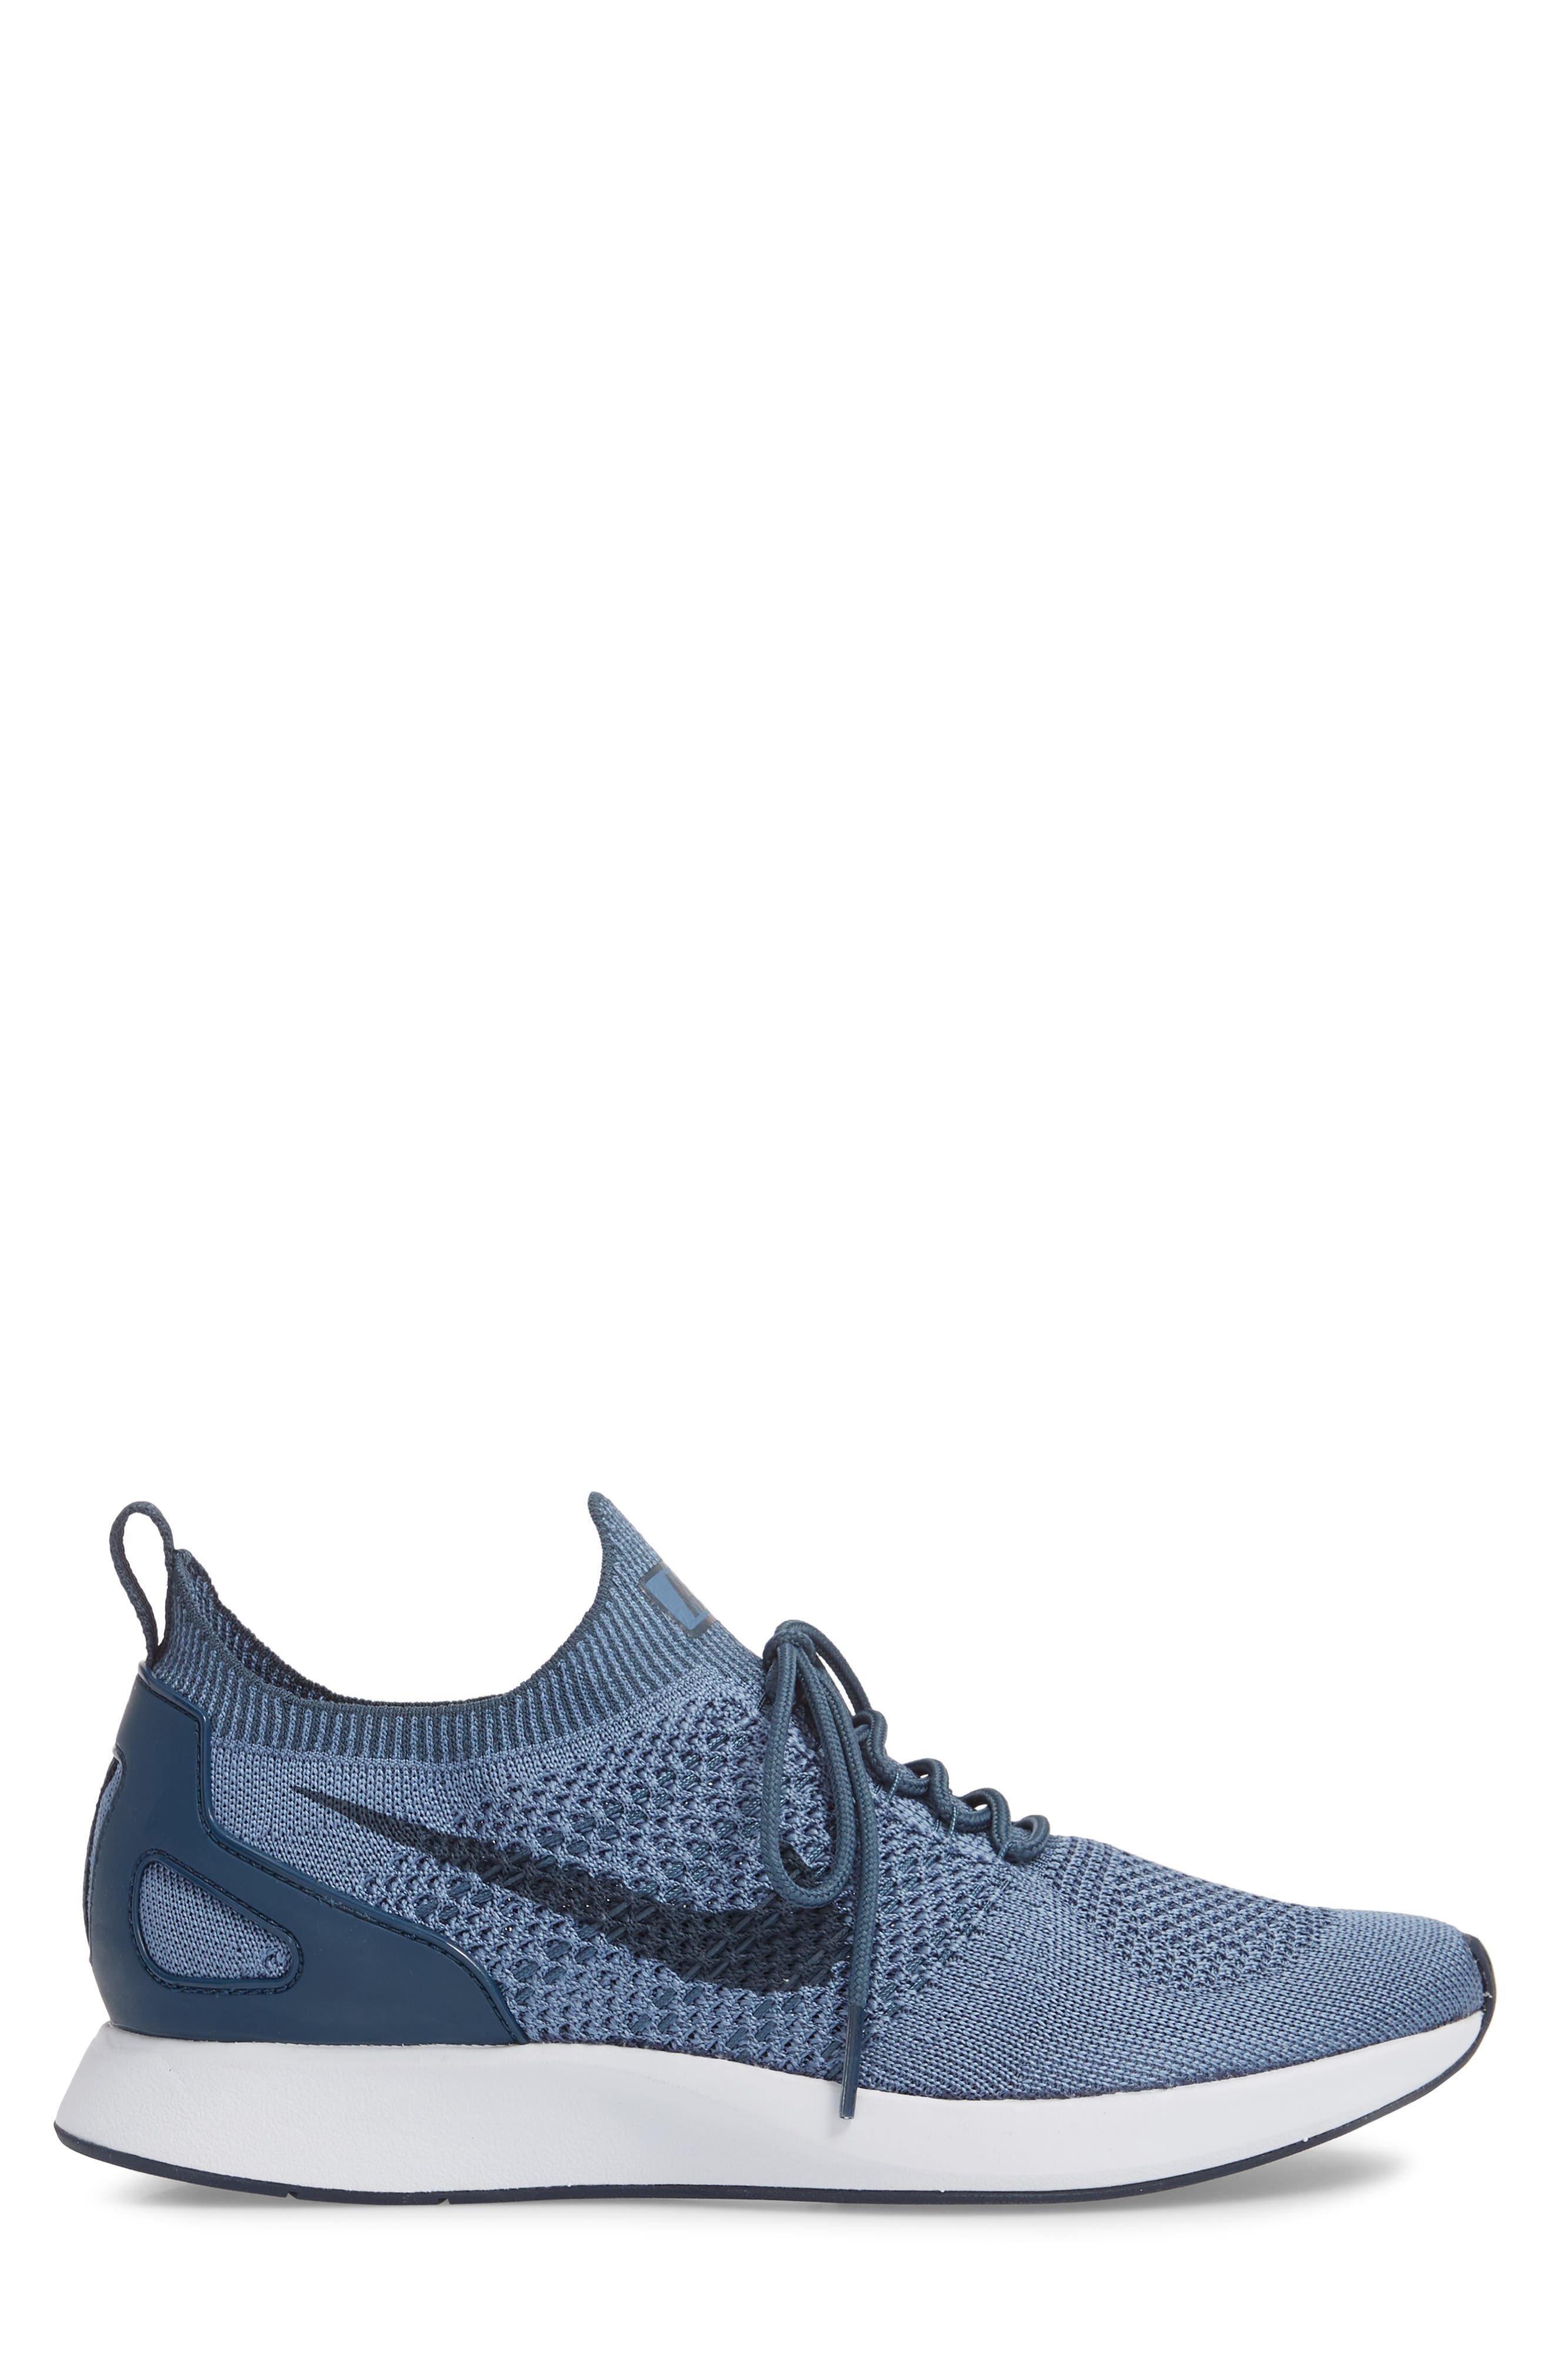 Air Zoom Mariah Flyknit Racer Sneaker,                             Alternate thumbnail 3, color,                             OCEAN FOG/ BLUE/ WHITE